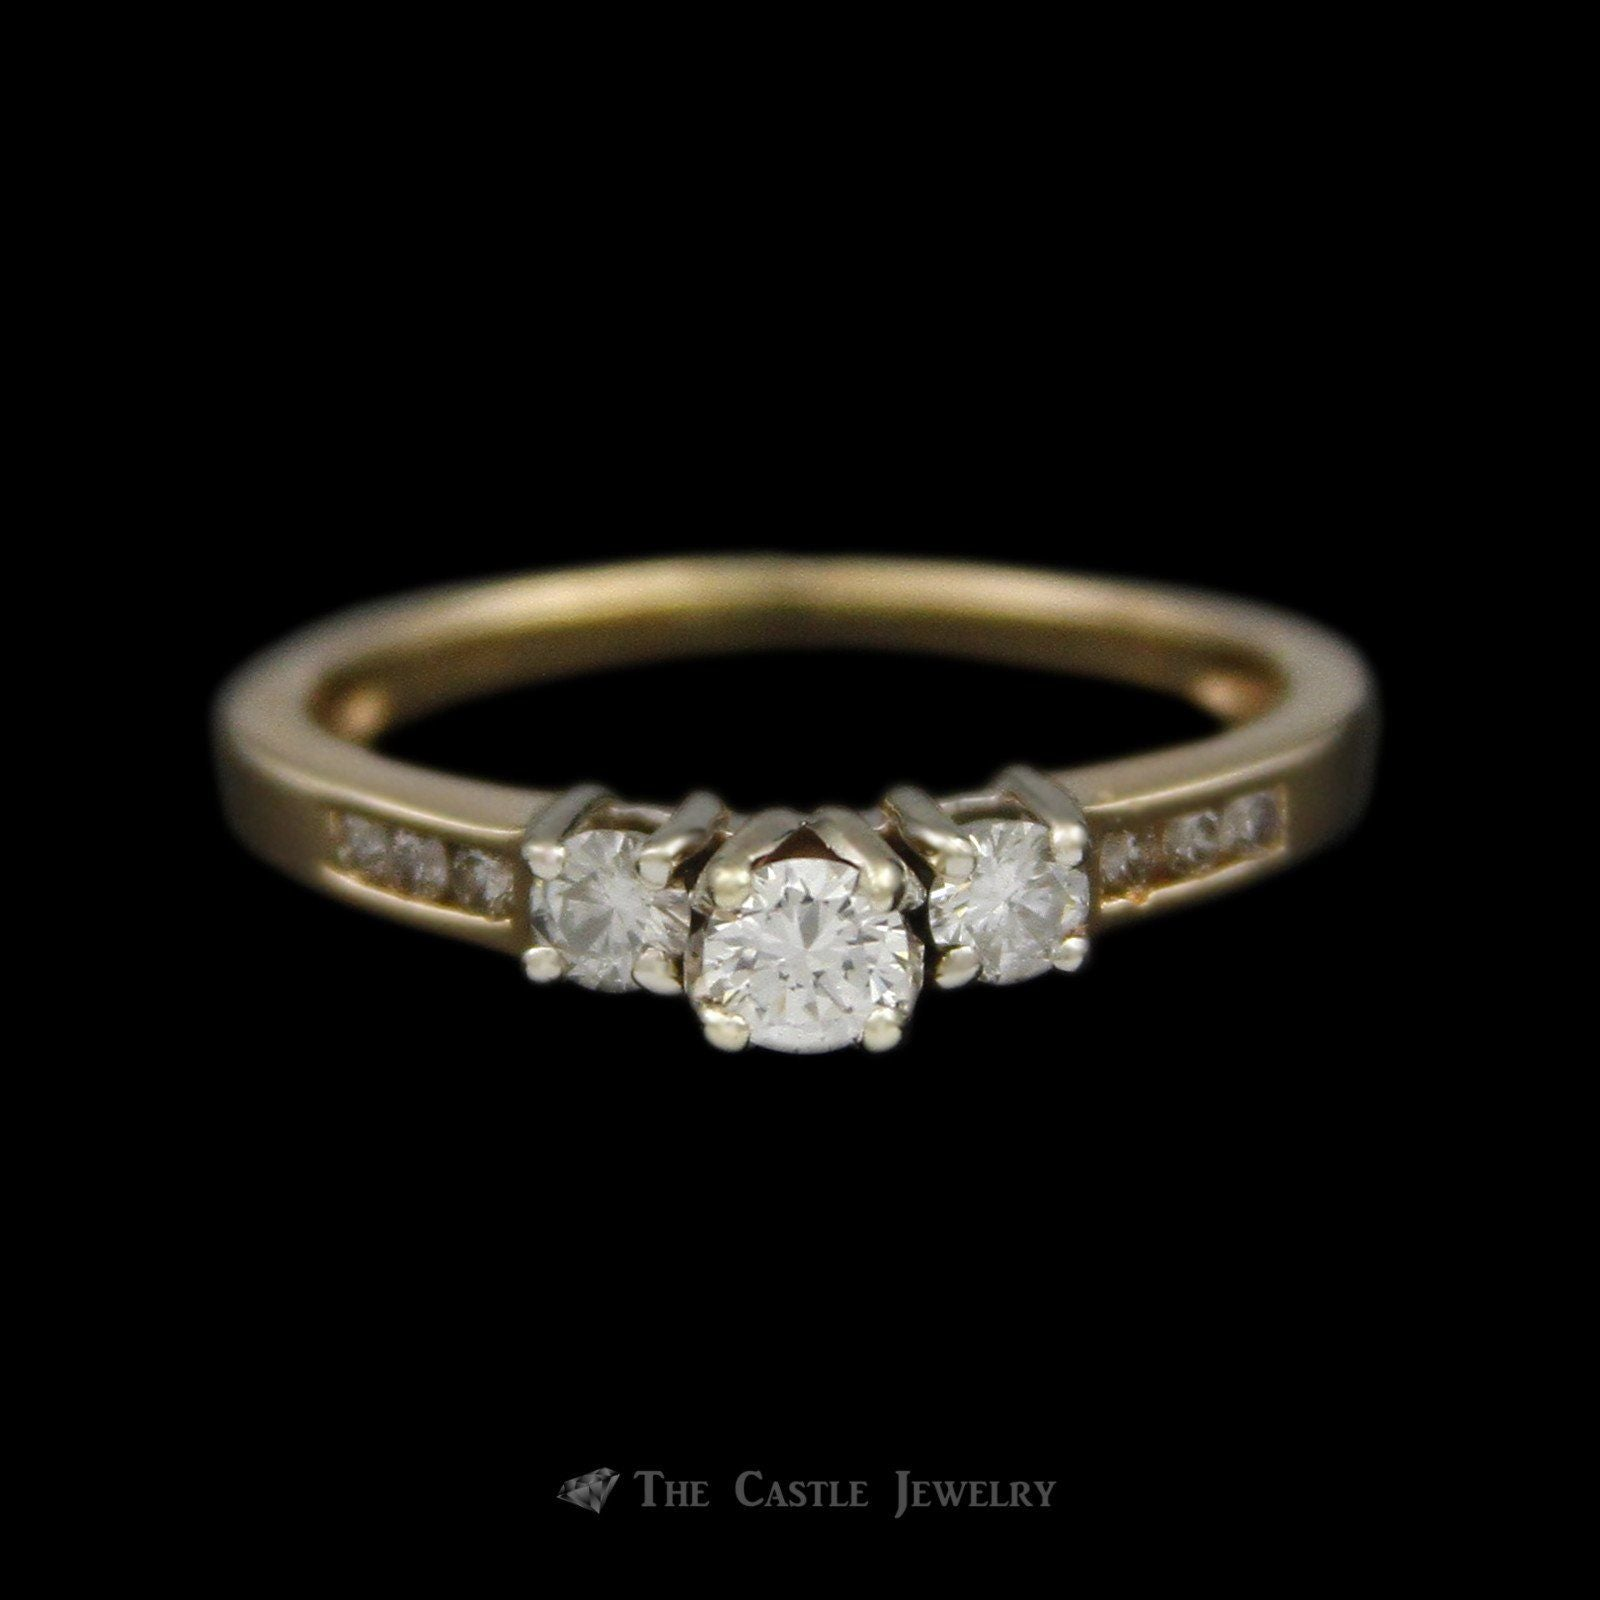 Round Brilliant Cut Diamond Bridal Ring with Round Diamond Sides Crafted in 14K Yellow Gold